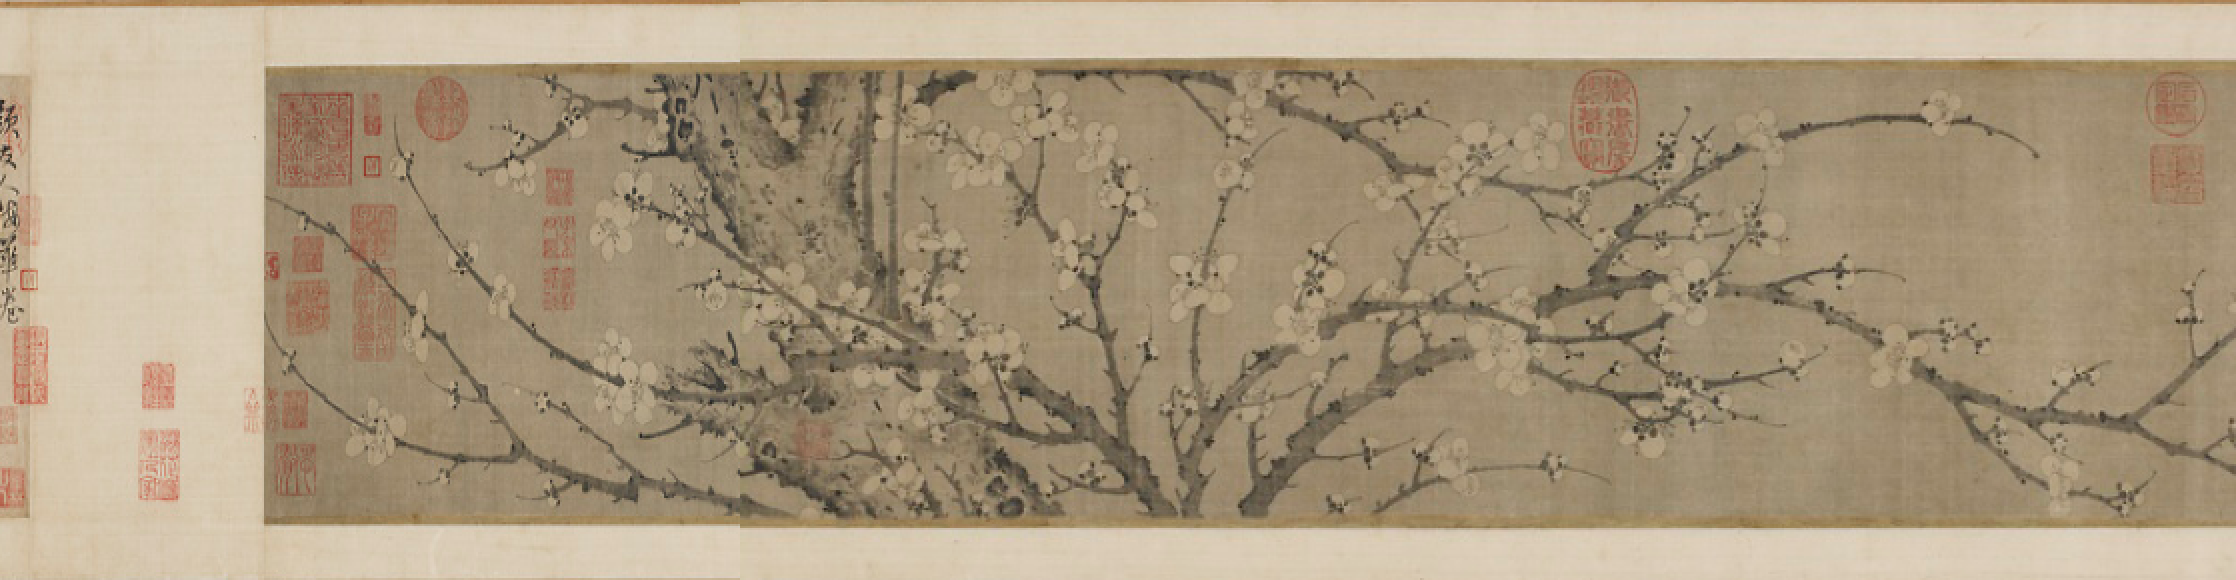 Fig.2 – Yansou, Ink Plum Blossoms, Section 1